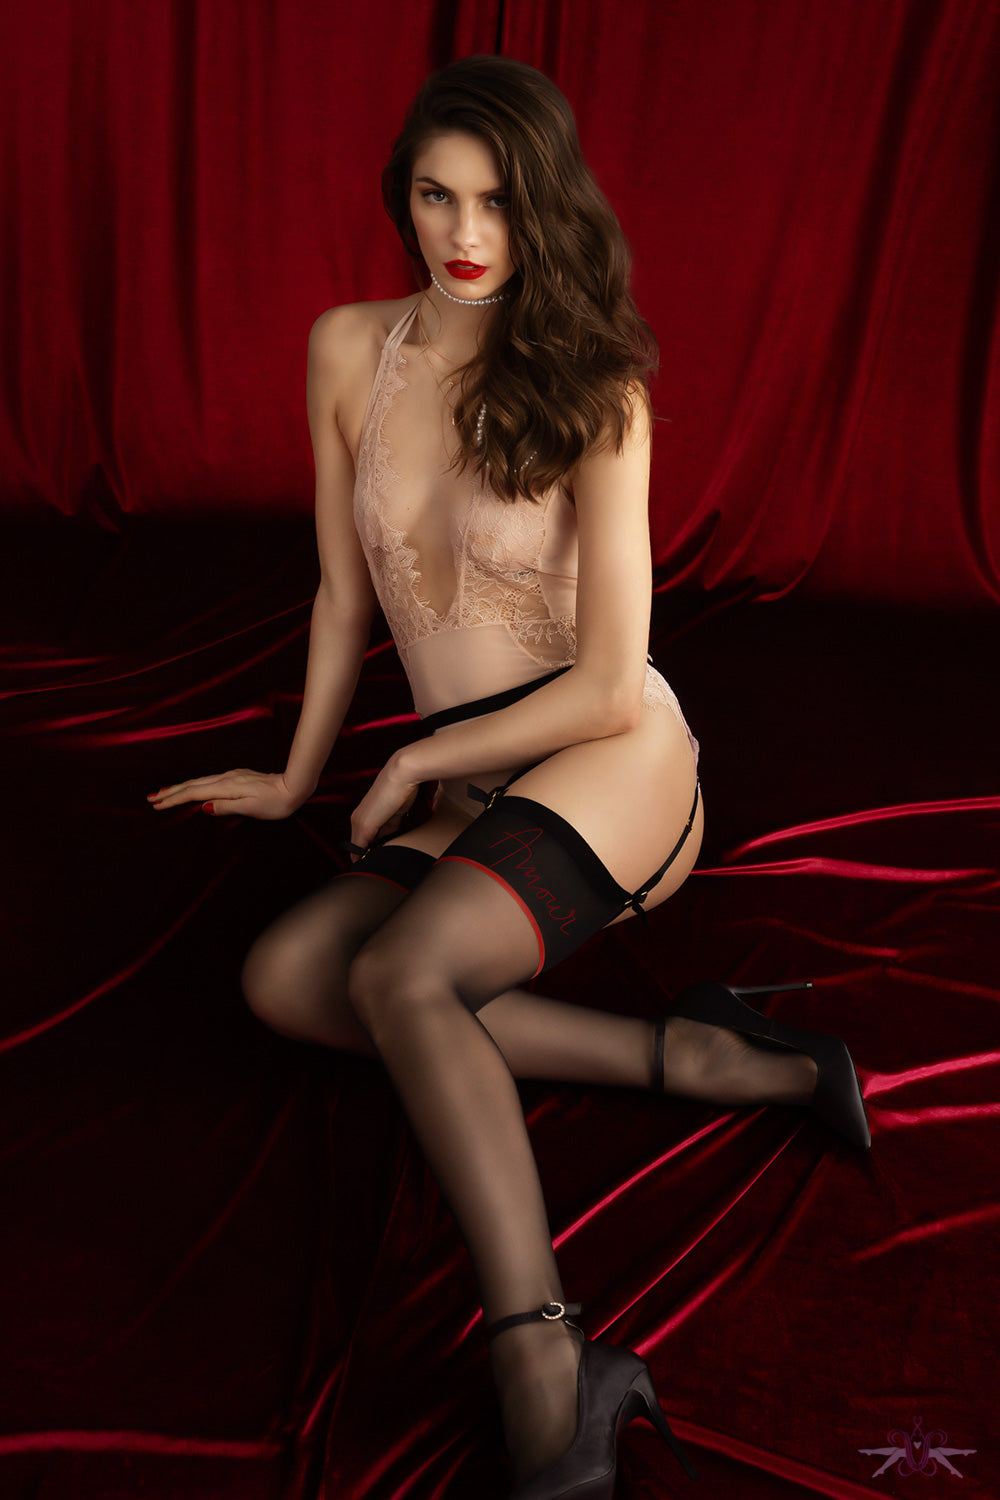 Fiore Amante Stockings